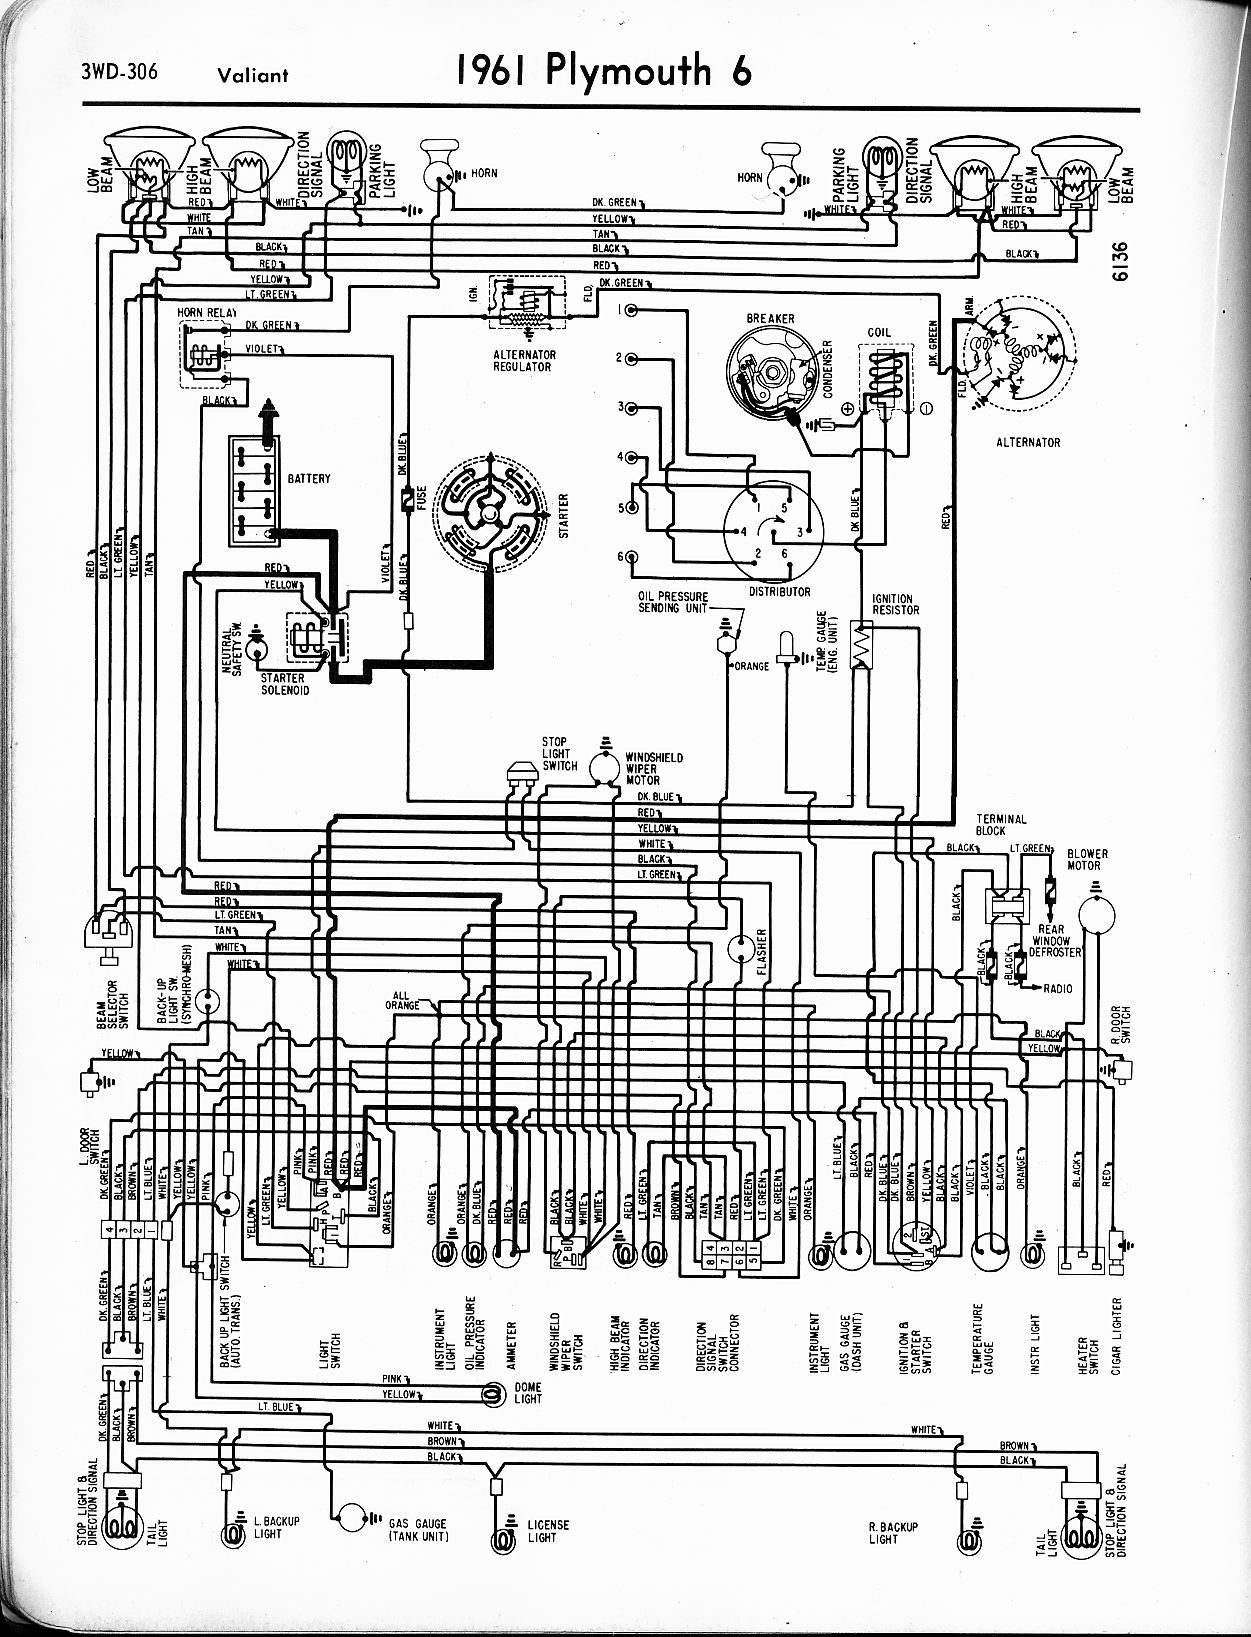 1968 Dodge Dart Wiring Diagram. Dodge. Auto Fuse Box Diagram